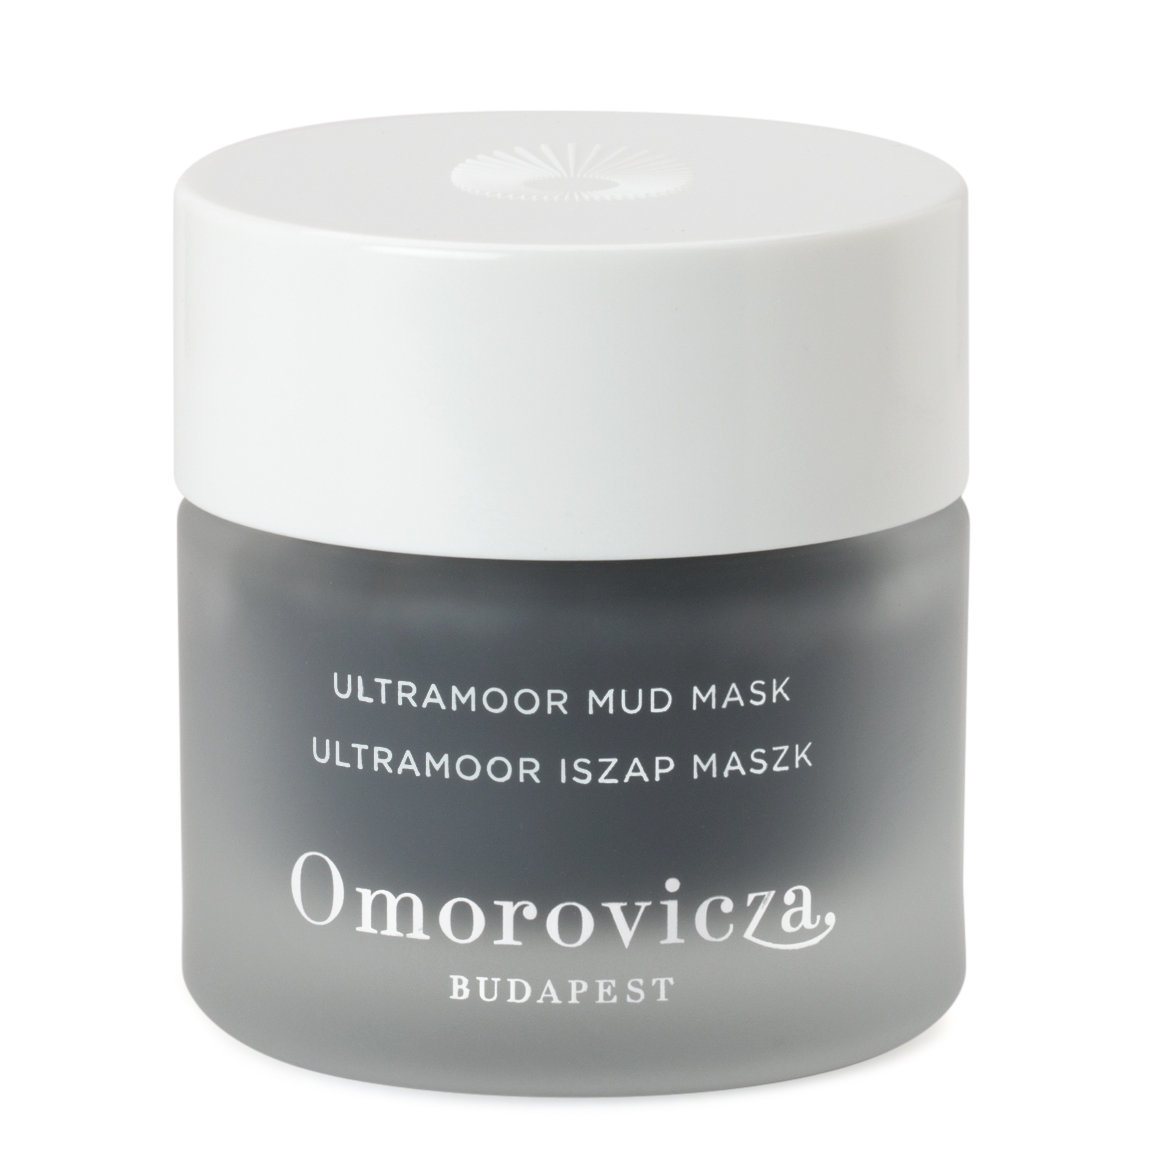 Omorovicza Ultramoor Mud Mask alternative view 1 - product swatch.